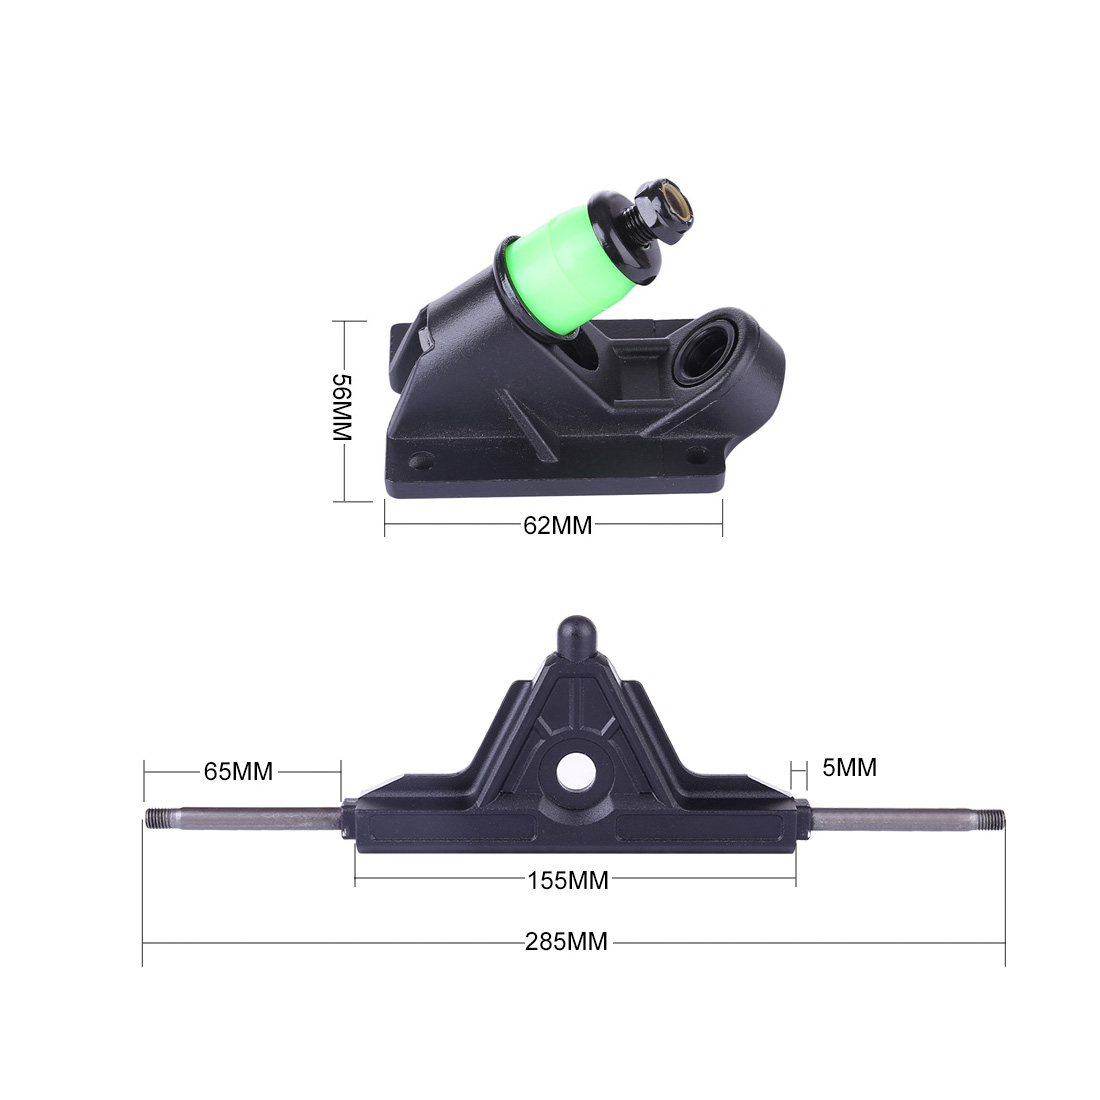 285mm Rear Truck for Electric Skateboard